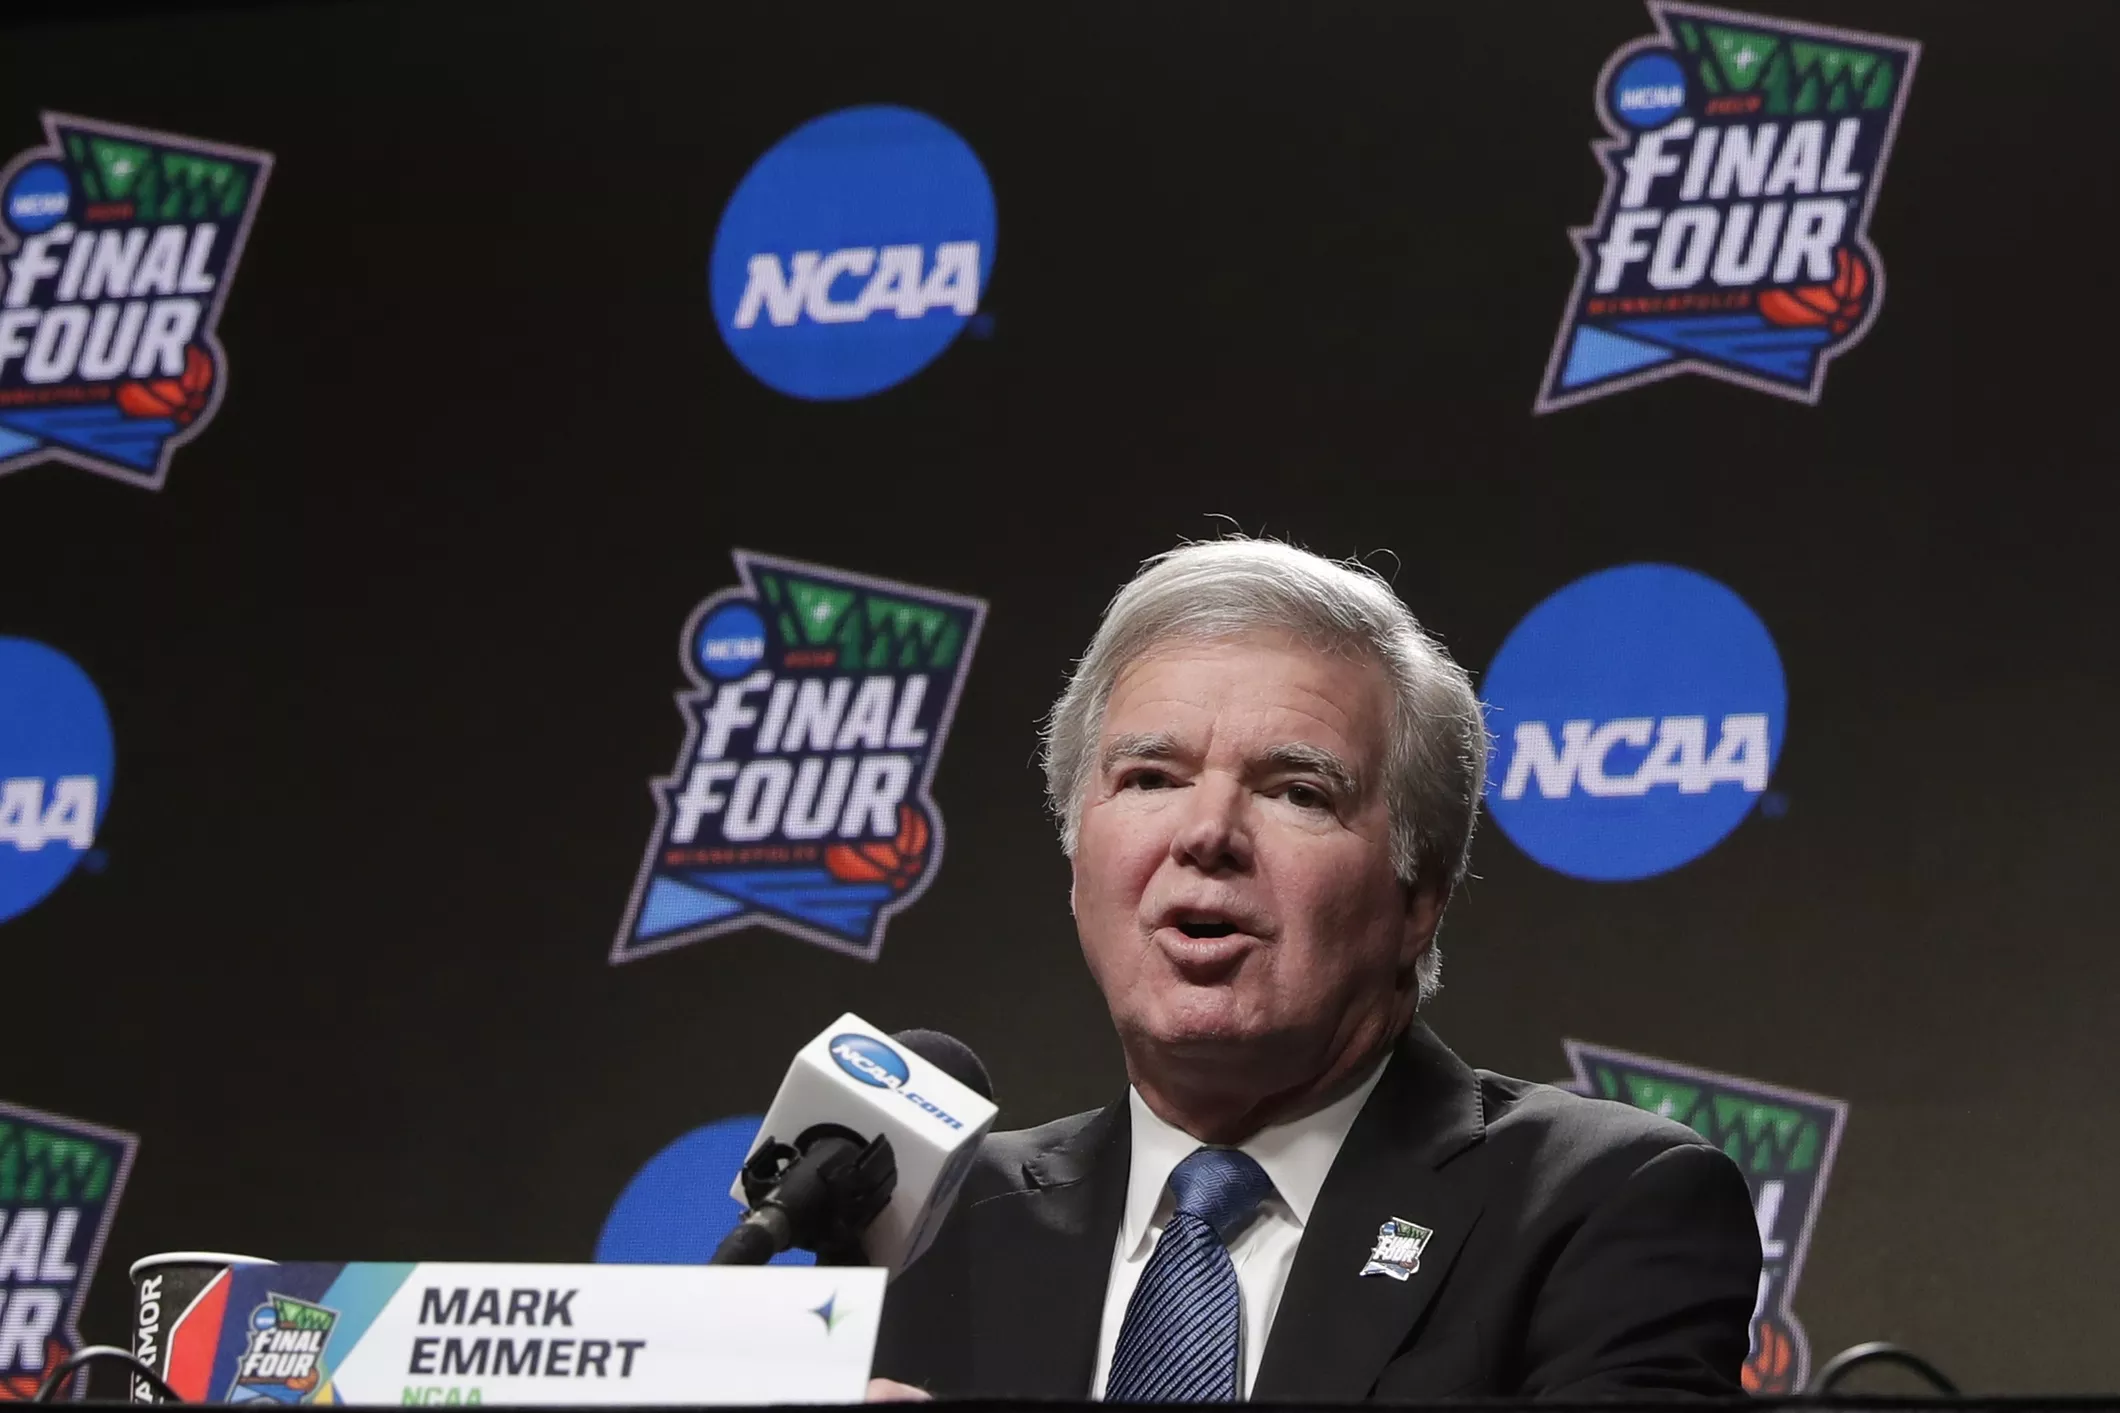 Mark Emmert discusses NCAA players getting paid